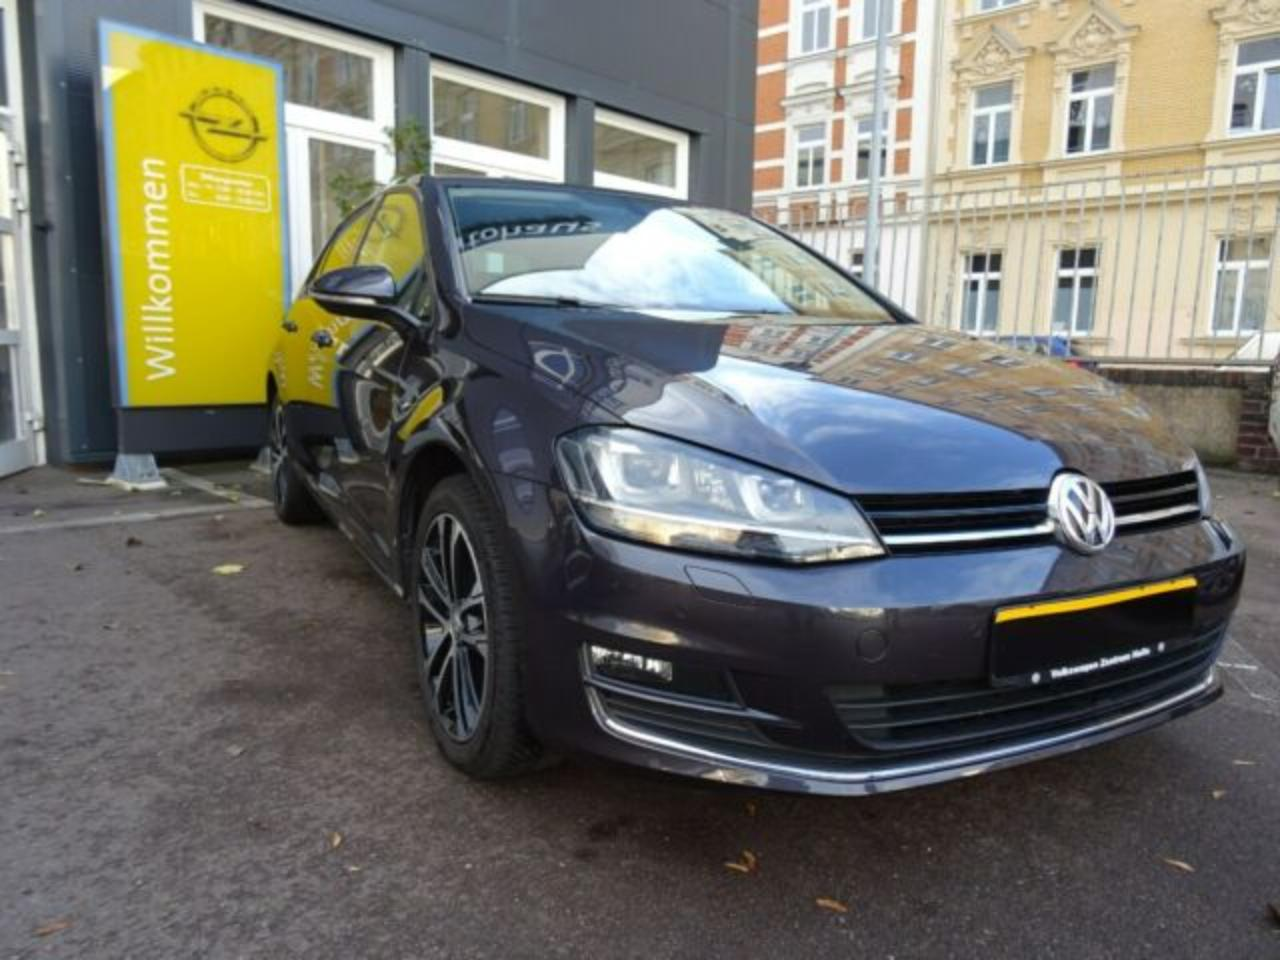 Volkswagen Golf VII 5tg. Lounge*Xenon*PDC*17